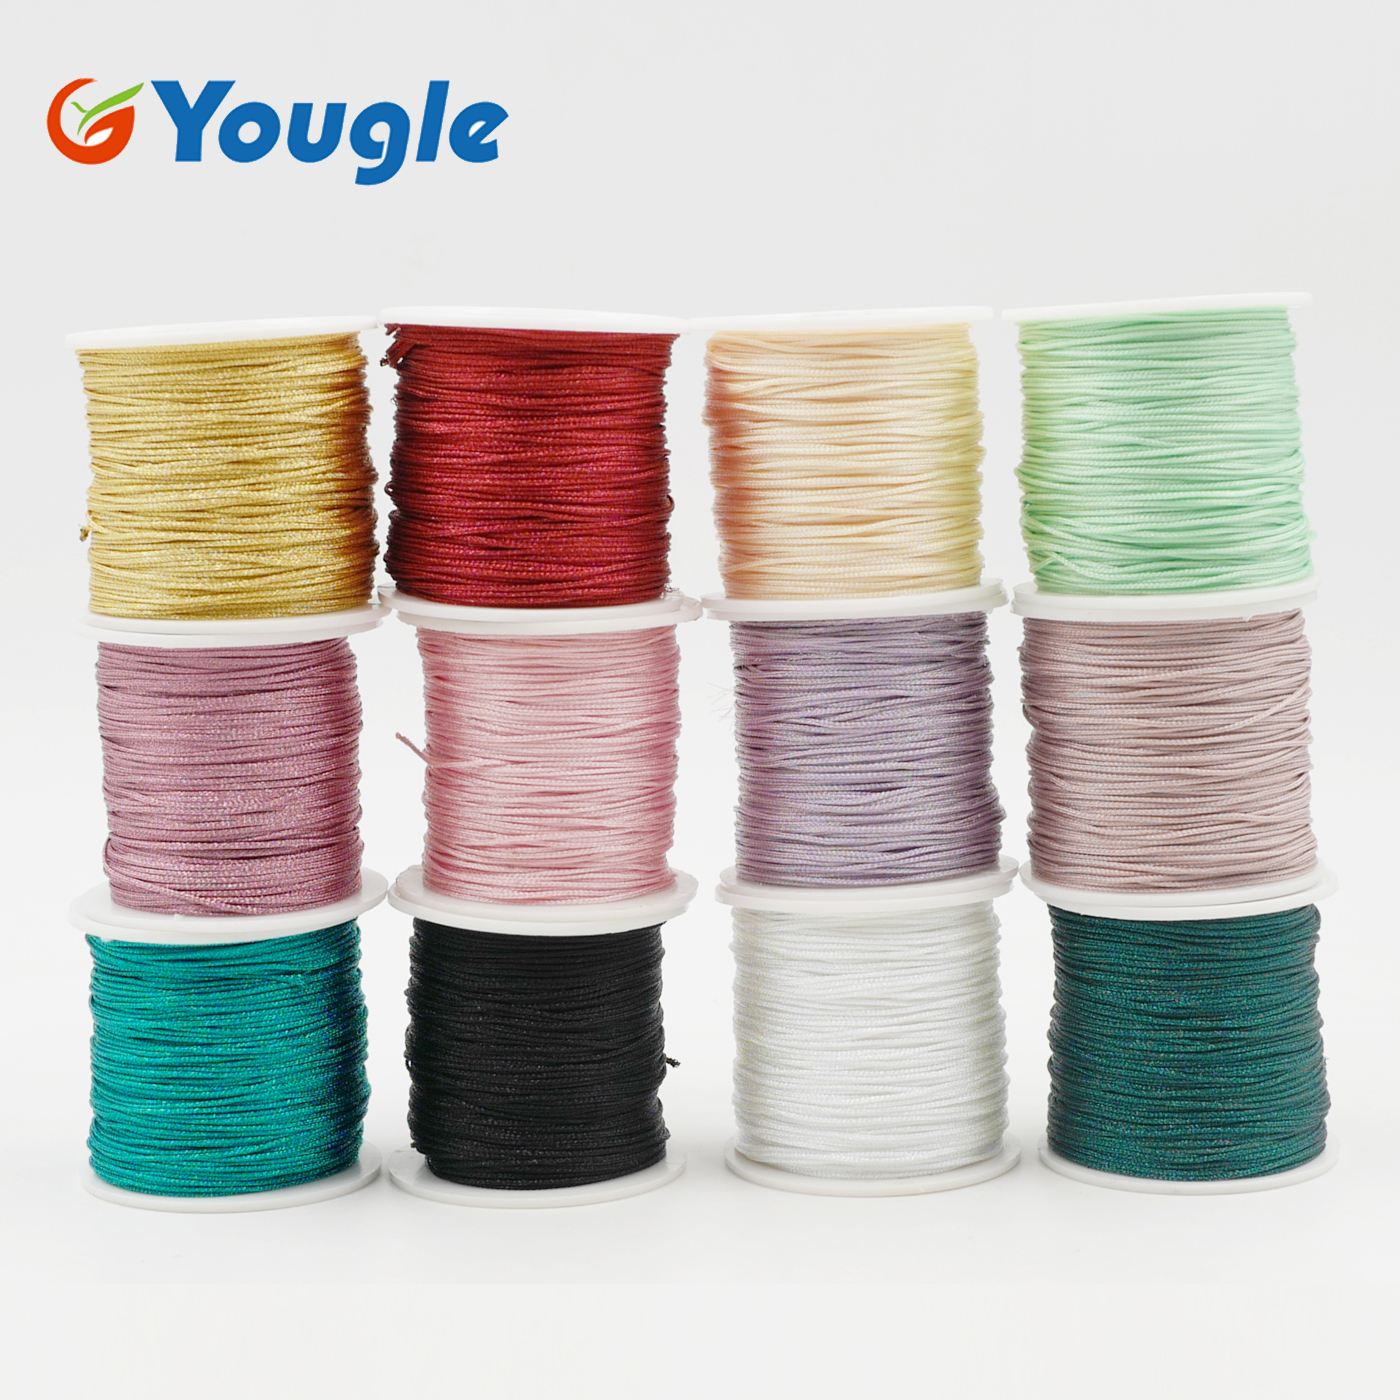 Yougle 100 Meters (328ft) PET Paracord Parachute Cord 1mm Diameter For DIY Paracord Bracelet Fishing Line